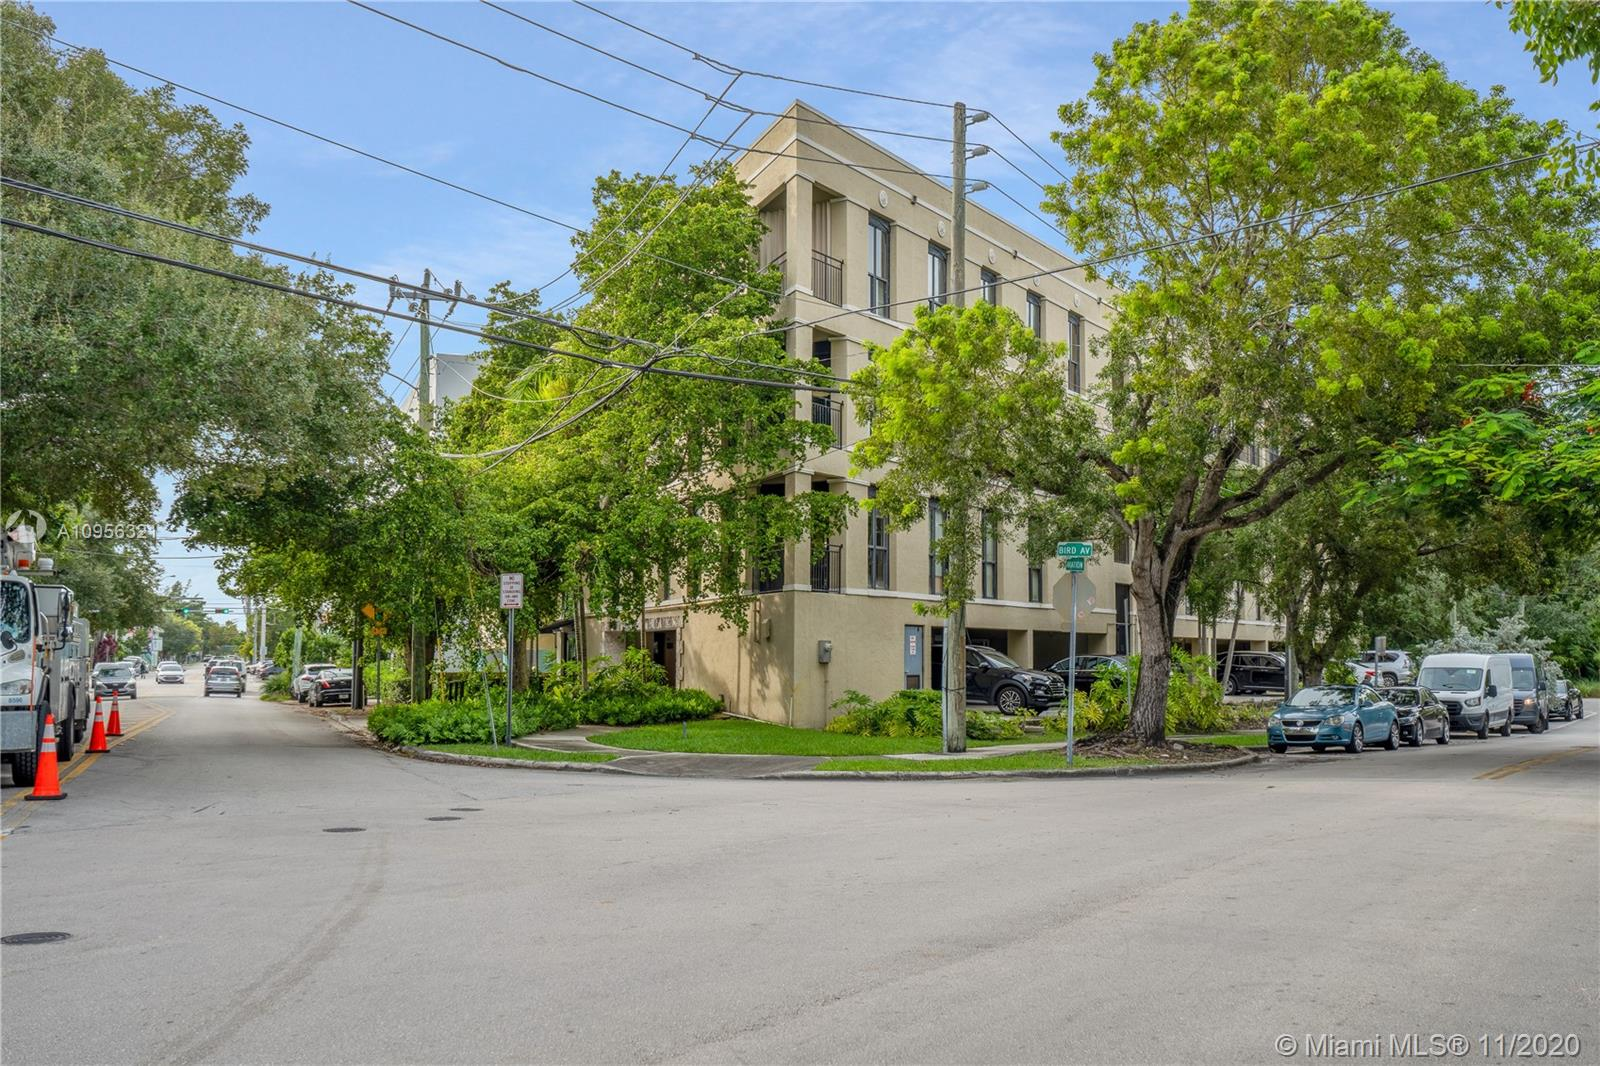 3006 Aviation Ave # 3A, Miami, Florida 33133, ,Commercial Sale,For Sale,3006 Aviation Ave # 3A,A10956321